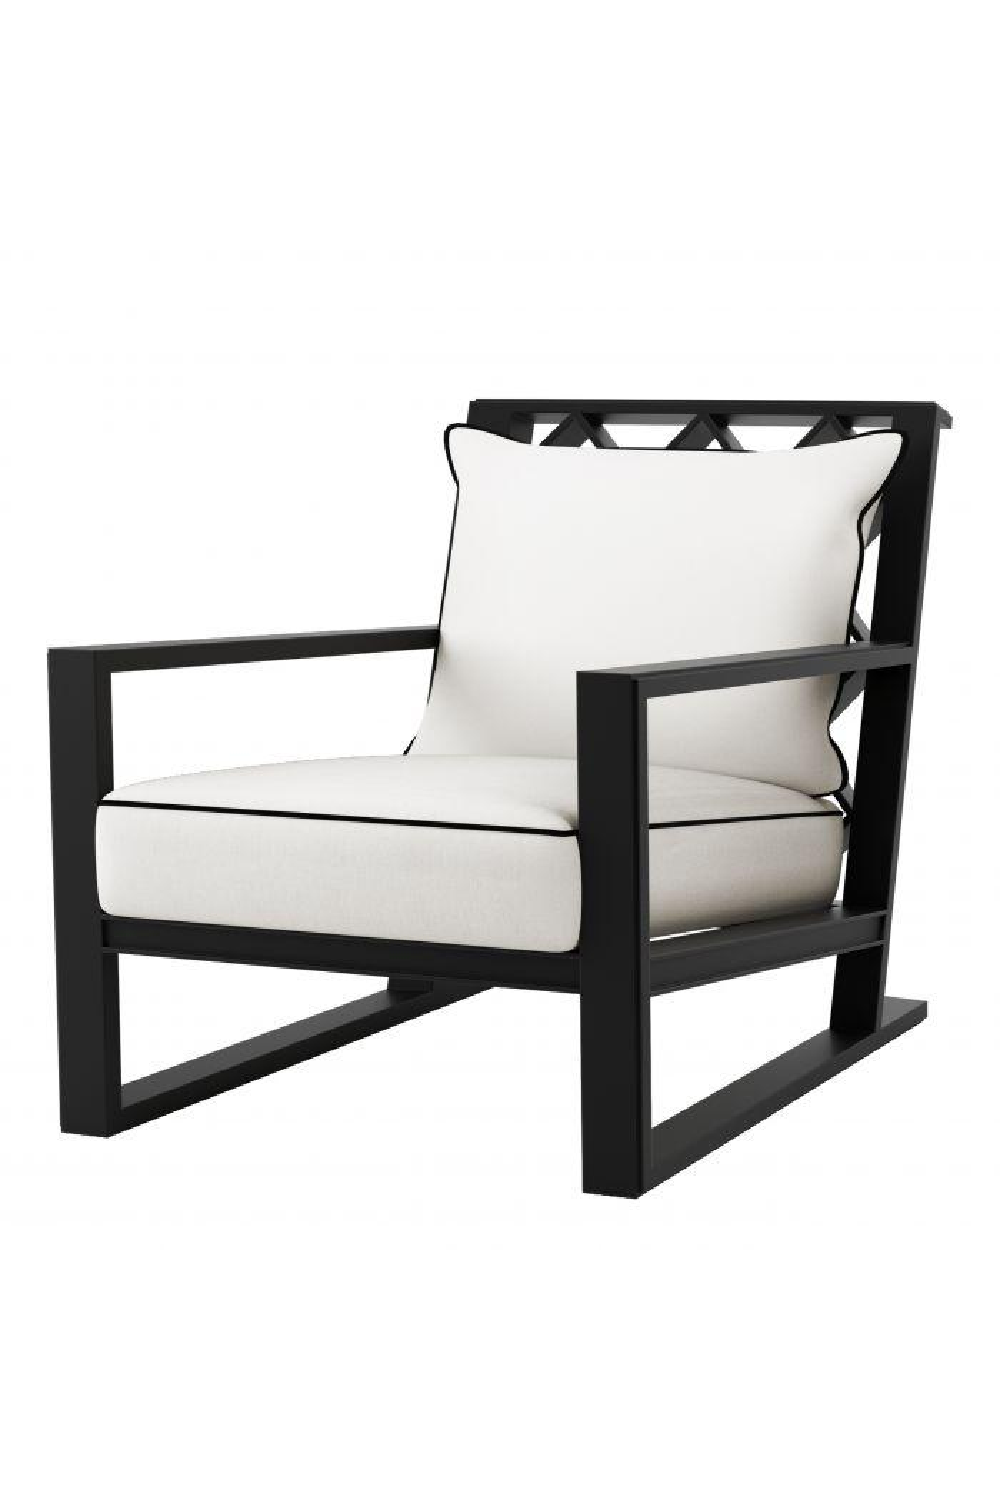 Black Outdoor Sunbrella Lounge Chair | Eichholtz Como